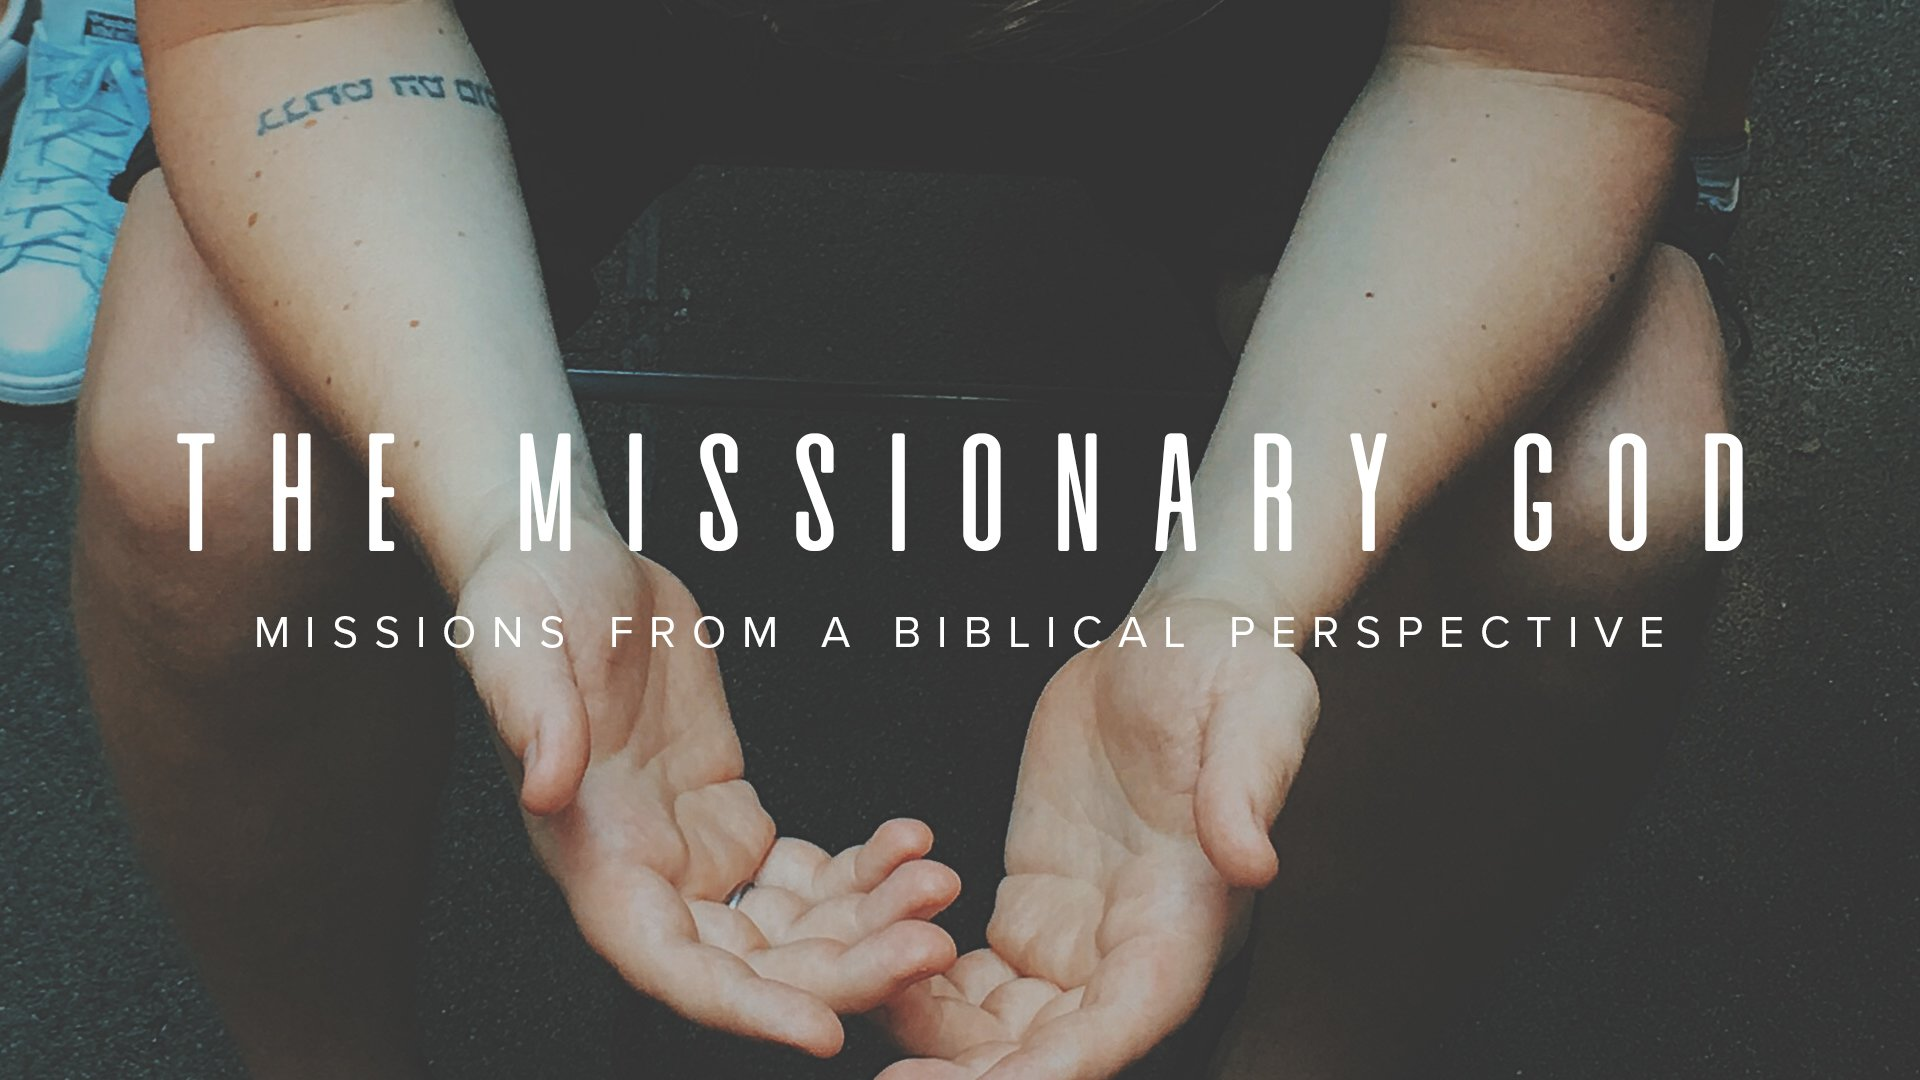 The Missionary God